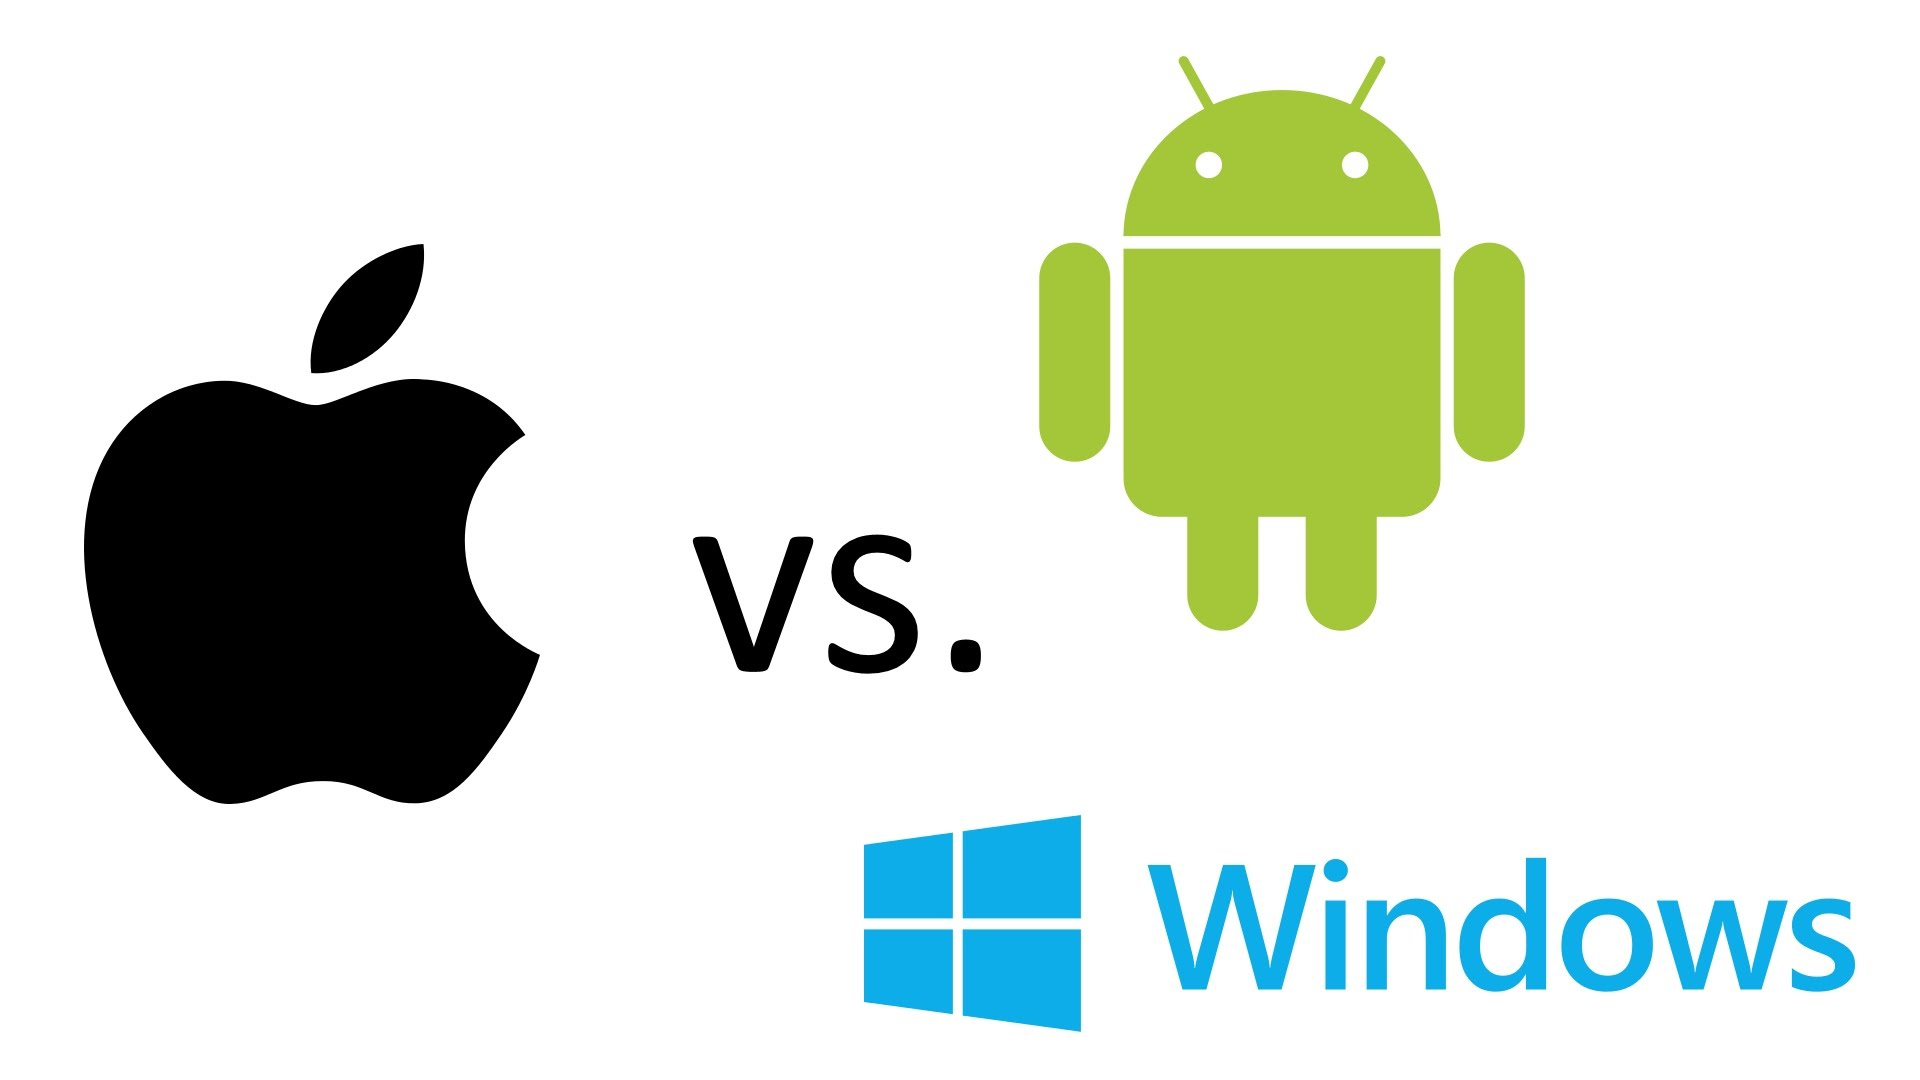 Apple vs android clipart banner transparent Android vs apple clipart - ClipartFox banner transparent